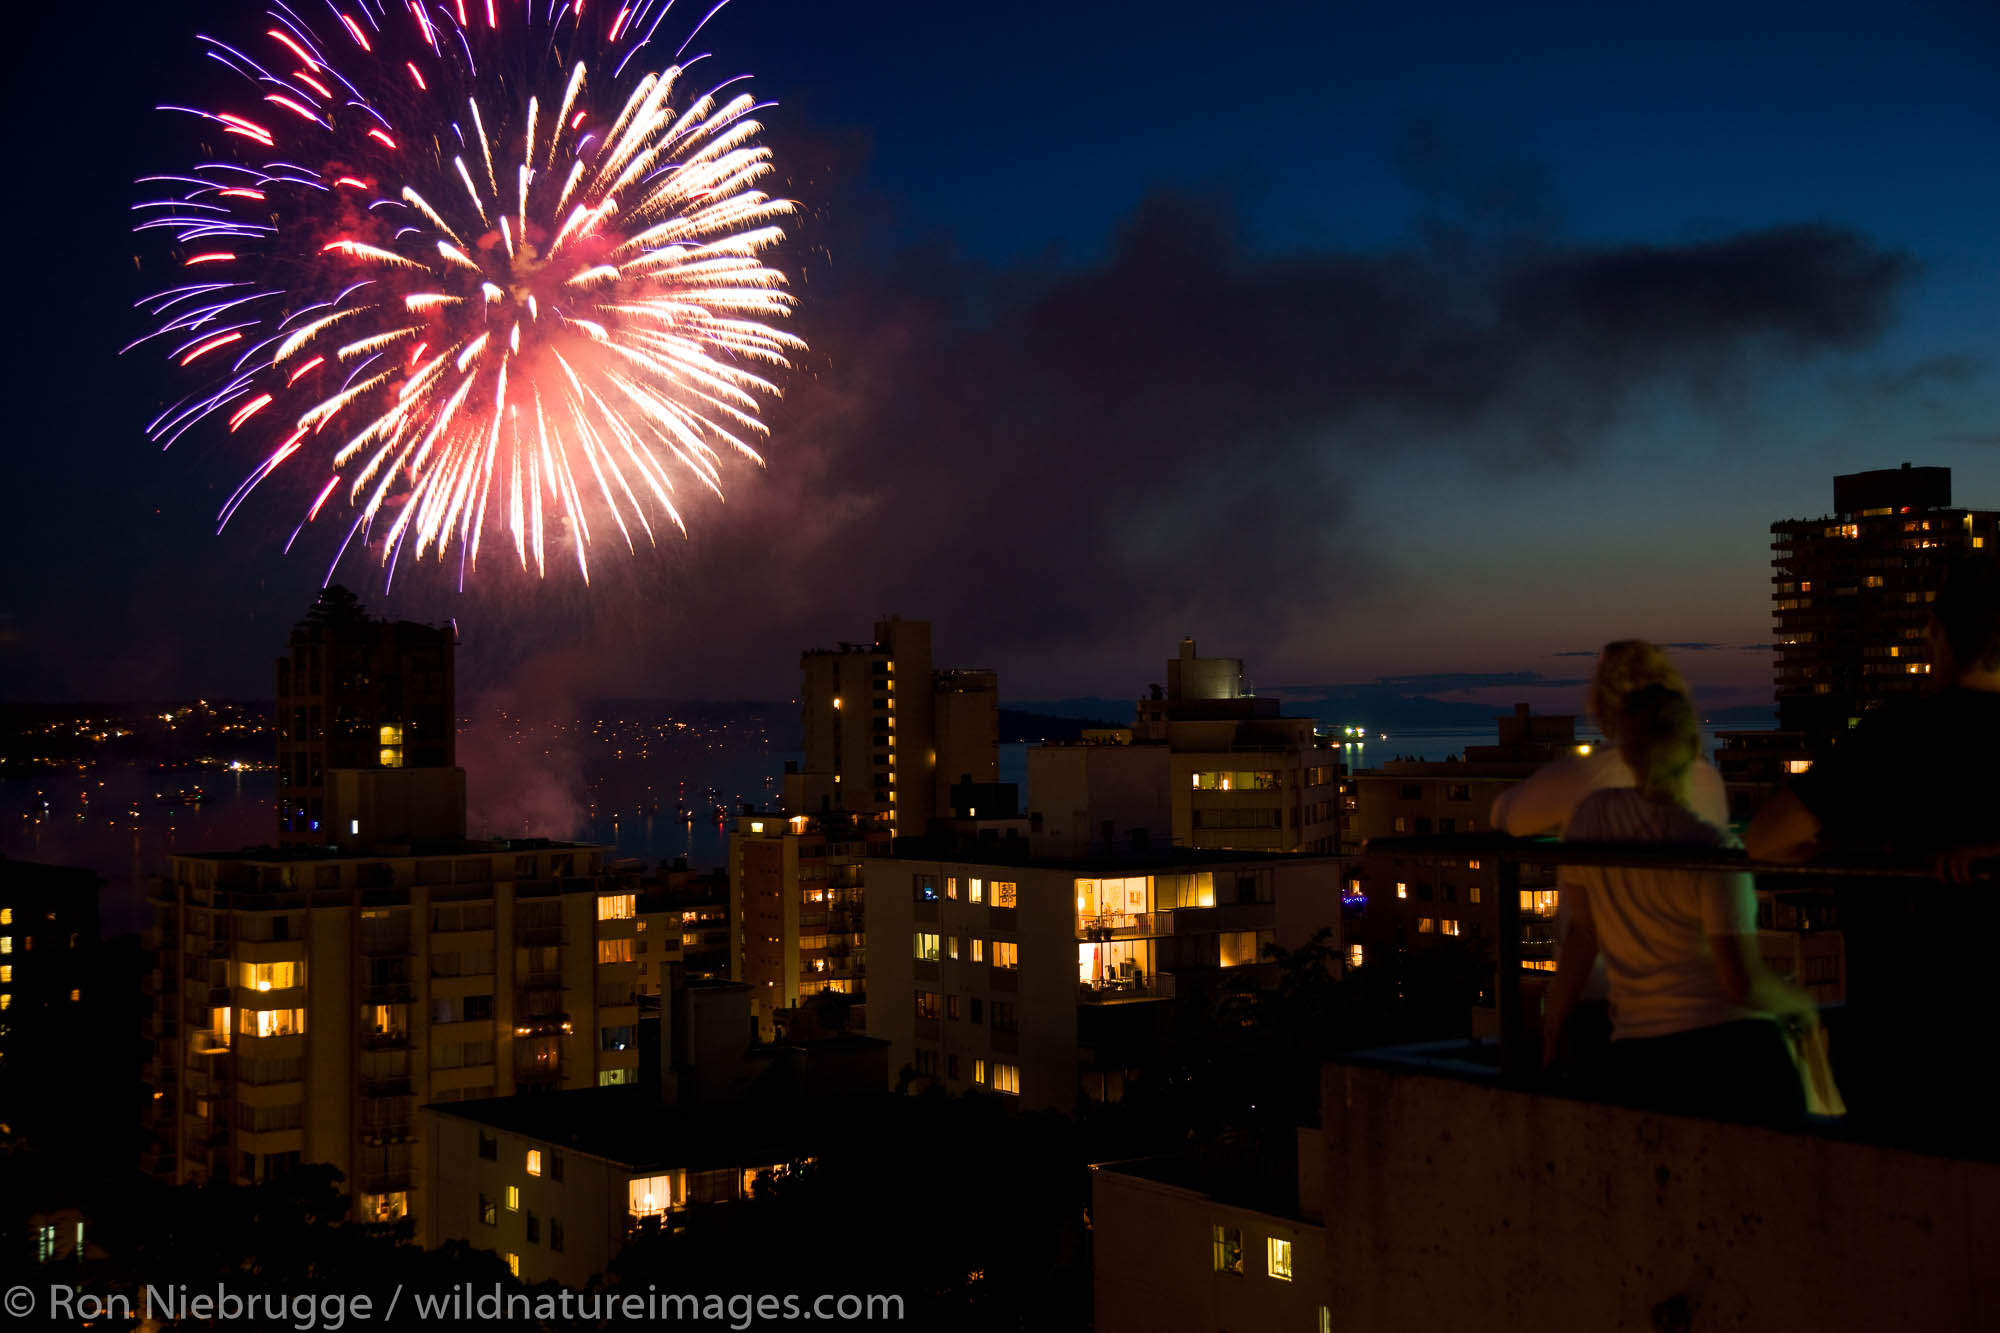 Fireworks during the Canadian portion of the 2009 Celebration of Light, Vancouver, British Columbia, Canada.